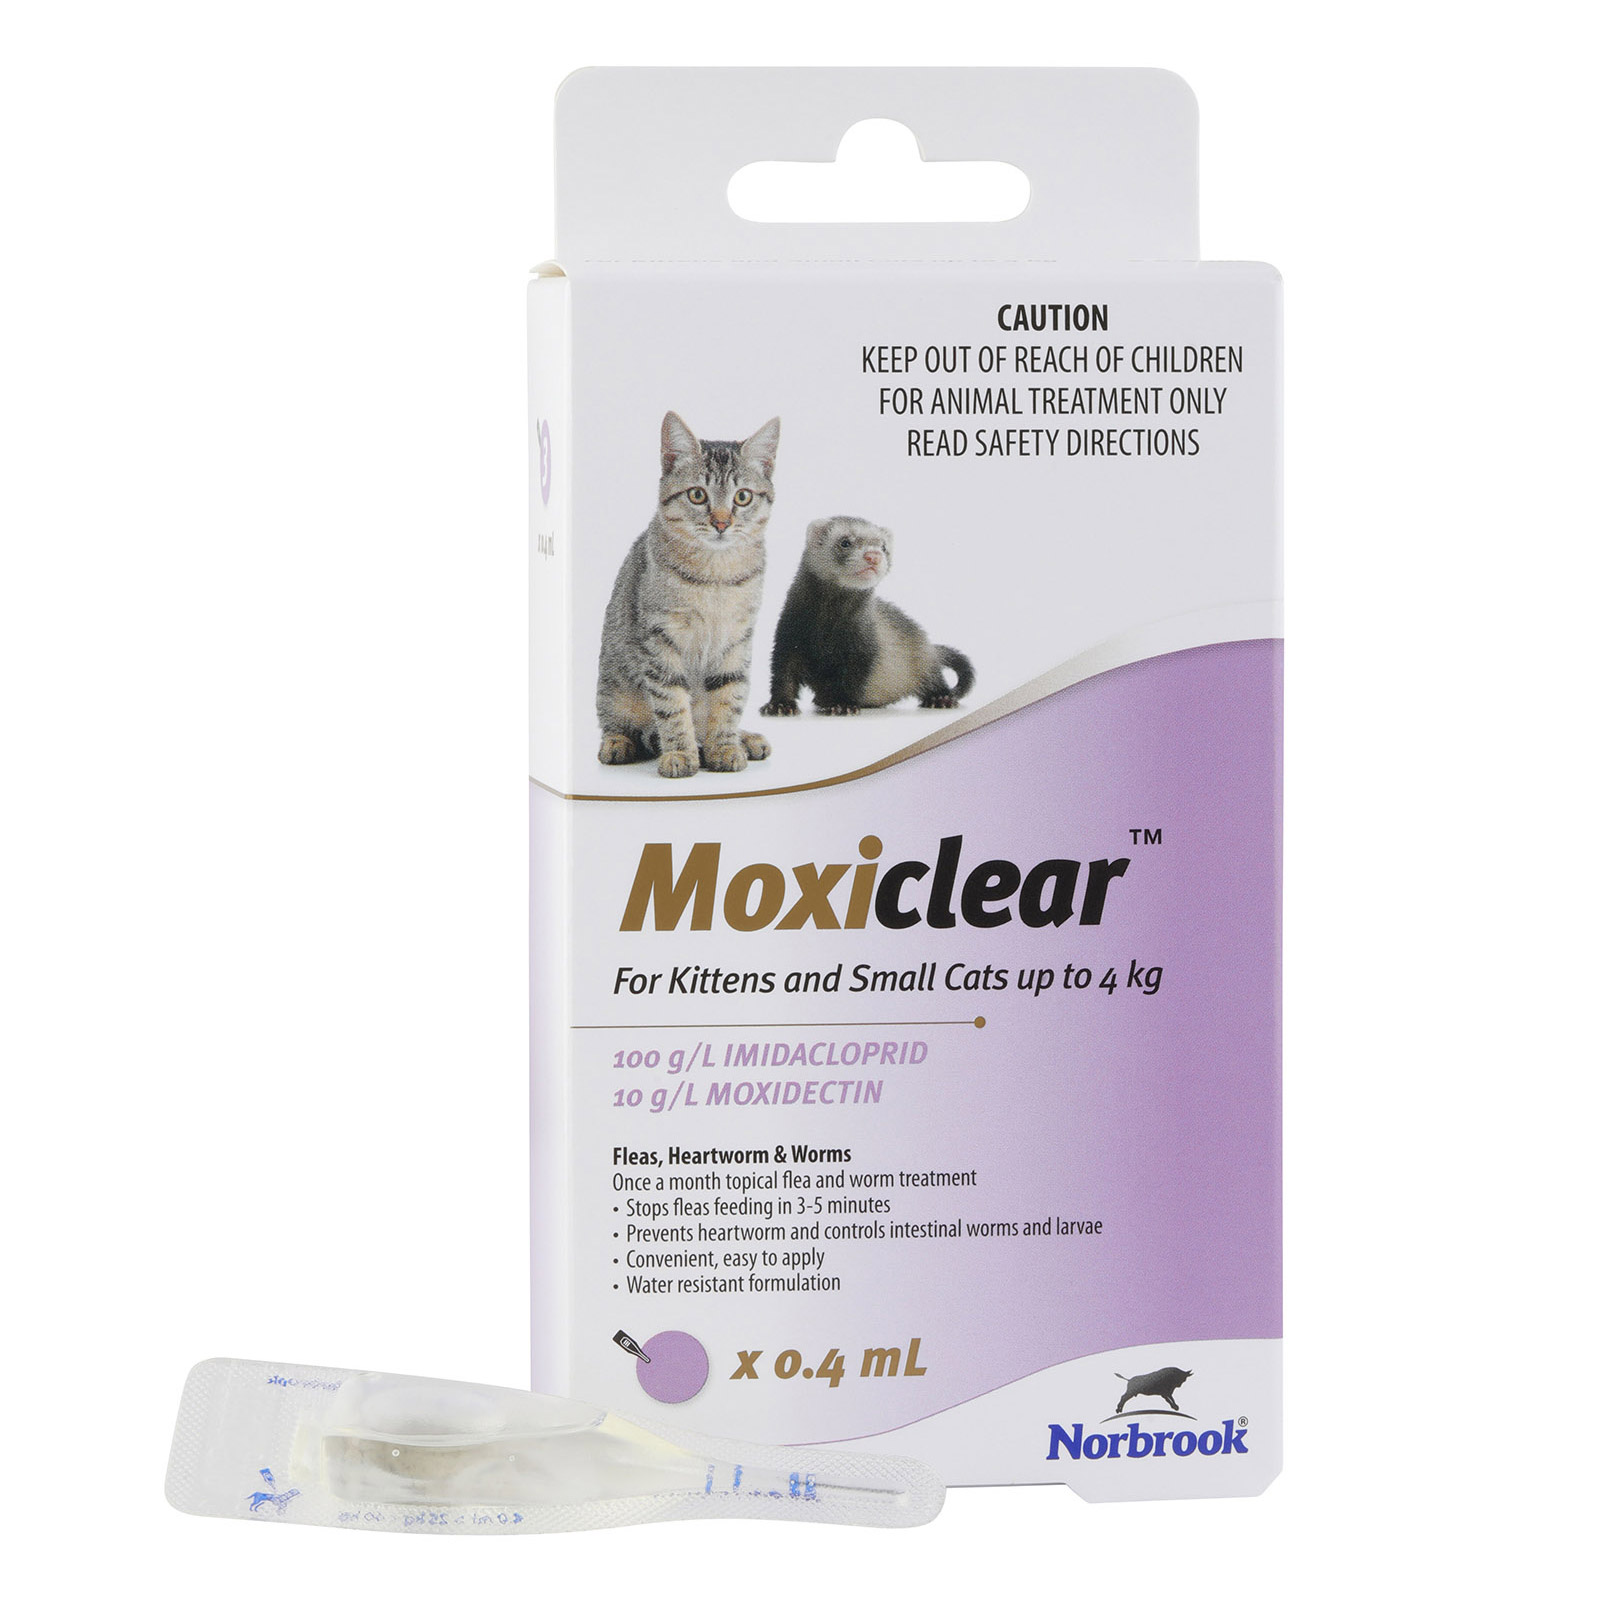 Moxiclear for Kittens and Small Cats Up To 4 kg (Purple)